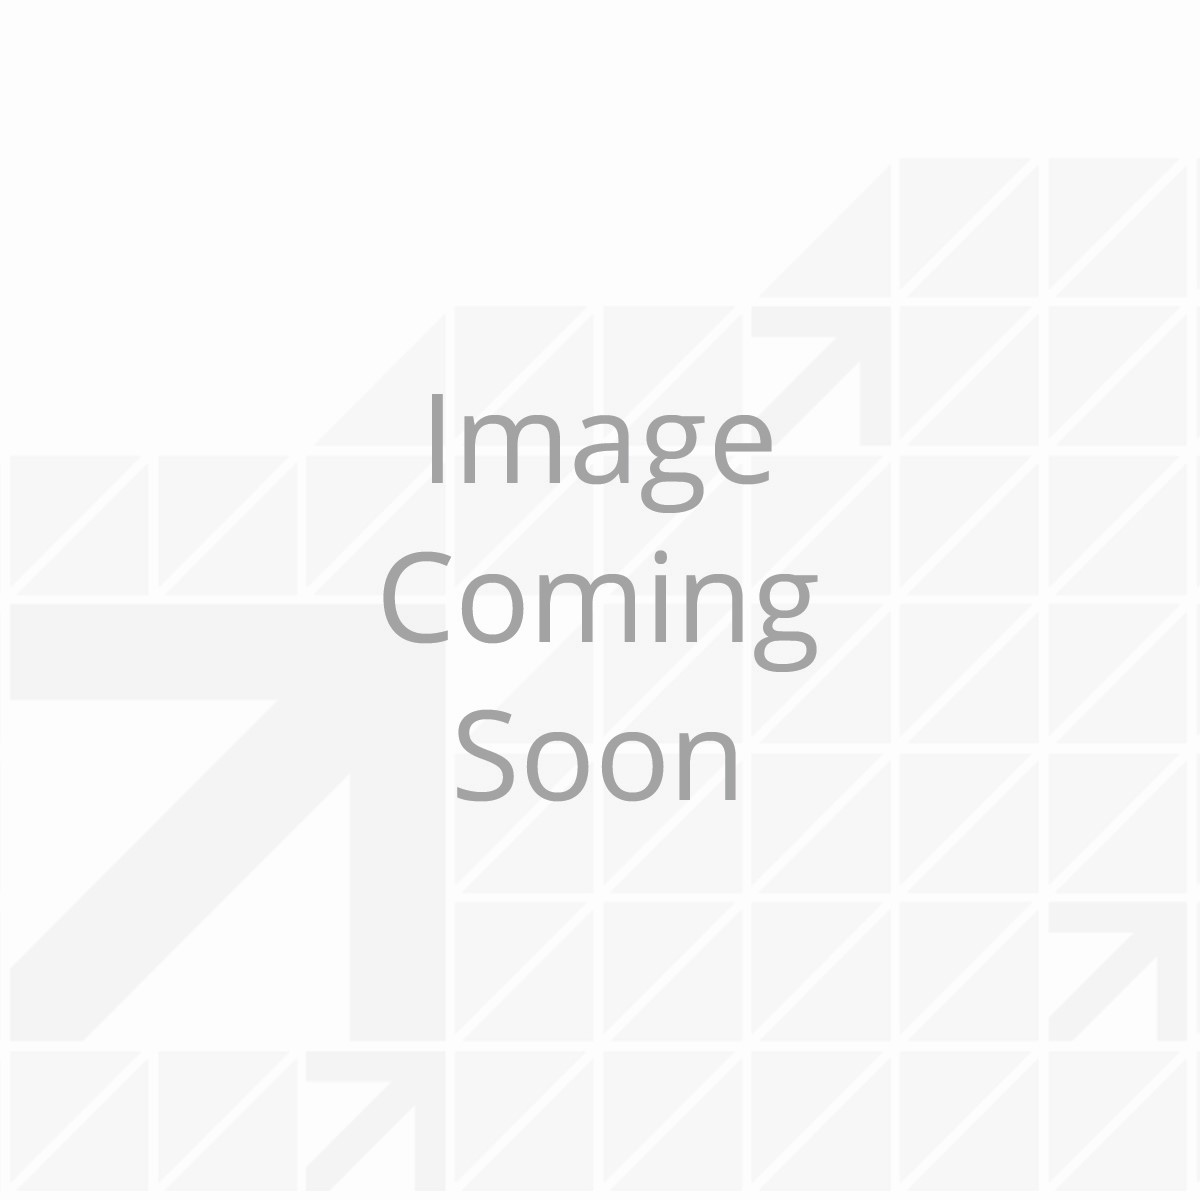 Replacement Controller for 4-Point Leveling and Slide-Outs (12656)